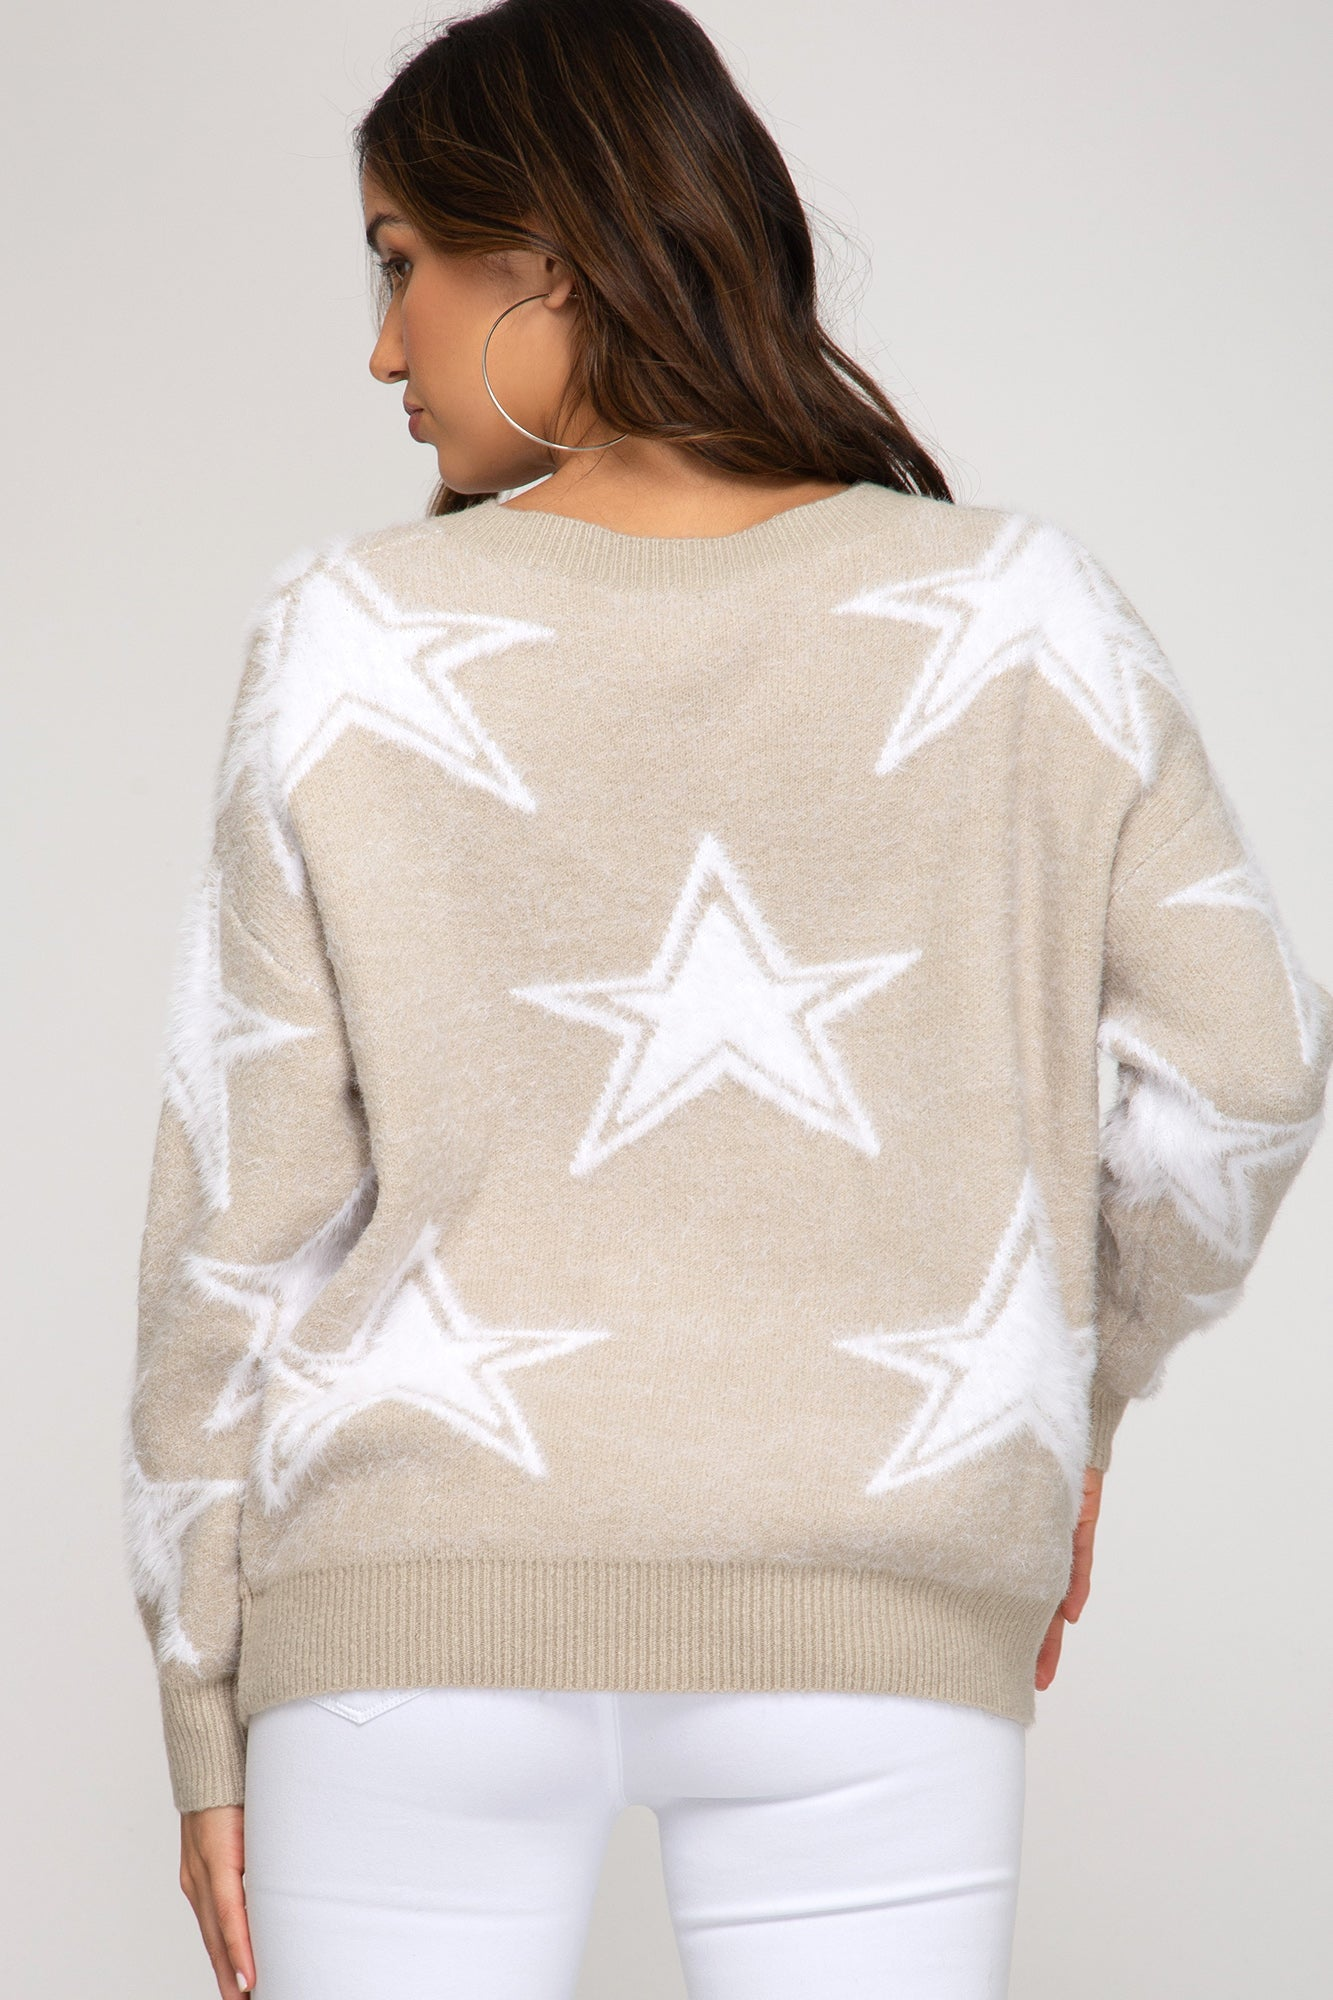 Long Sleeve Star Printed Knit Sweater